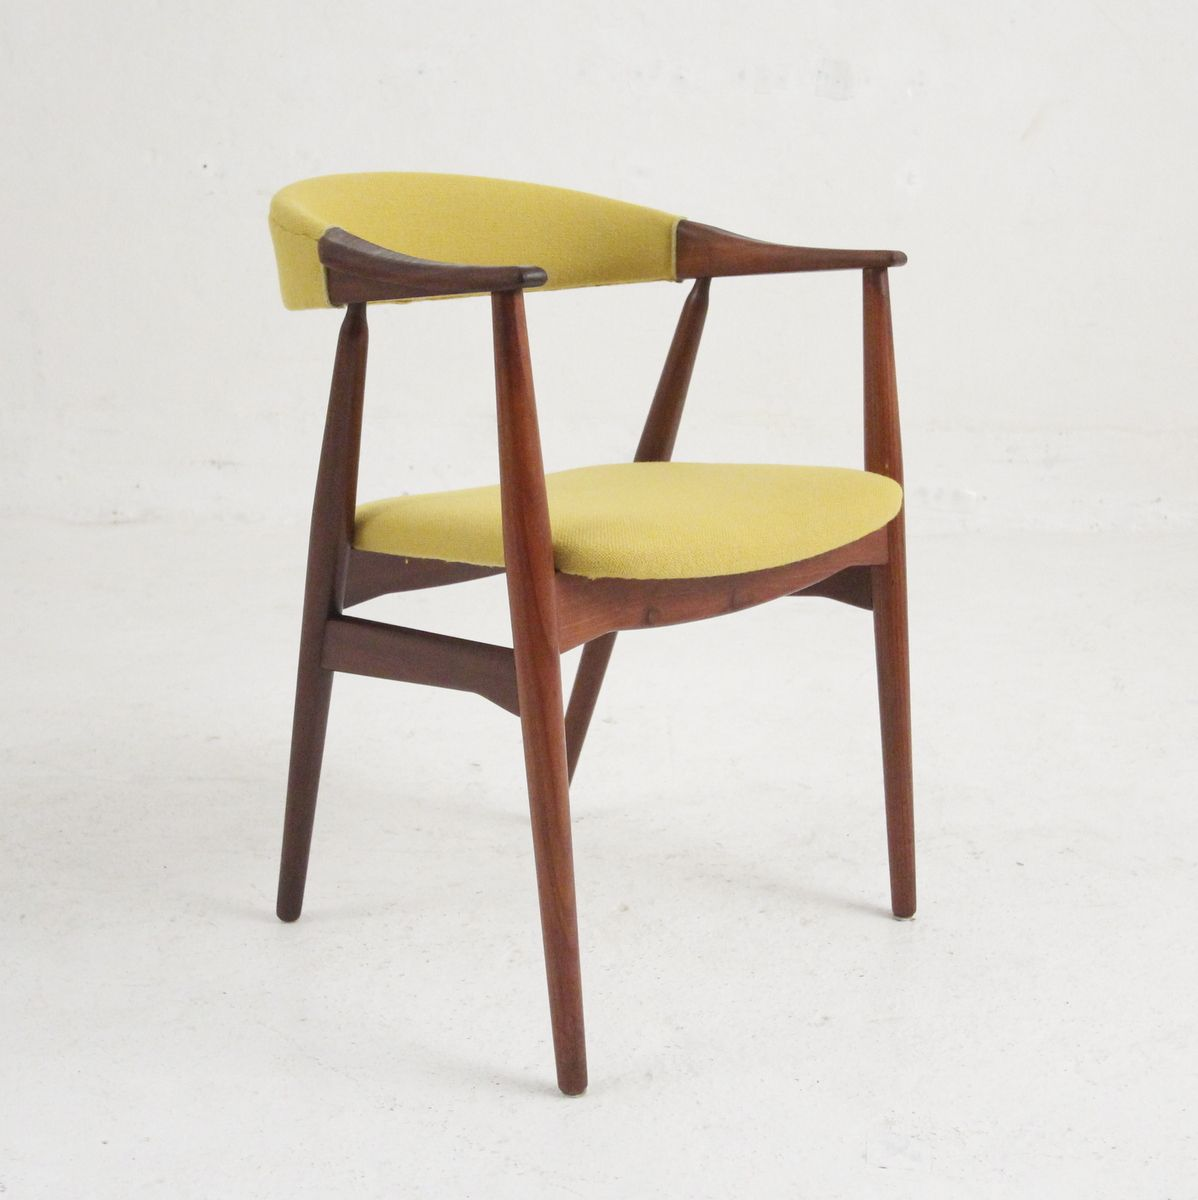 Danish Modern Dining Chairs in Rosewood 1960s Set of 6  : danish modern dining chairs in rosewood 1960s set of 6 7 from www.pamono.com size 1198 x 1200 jpeg 465kB